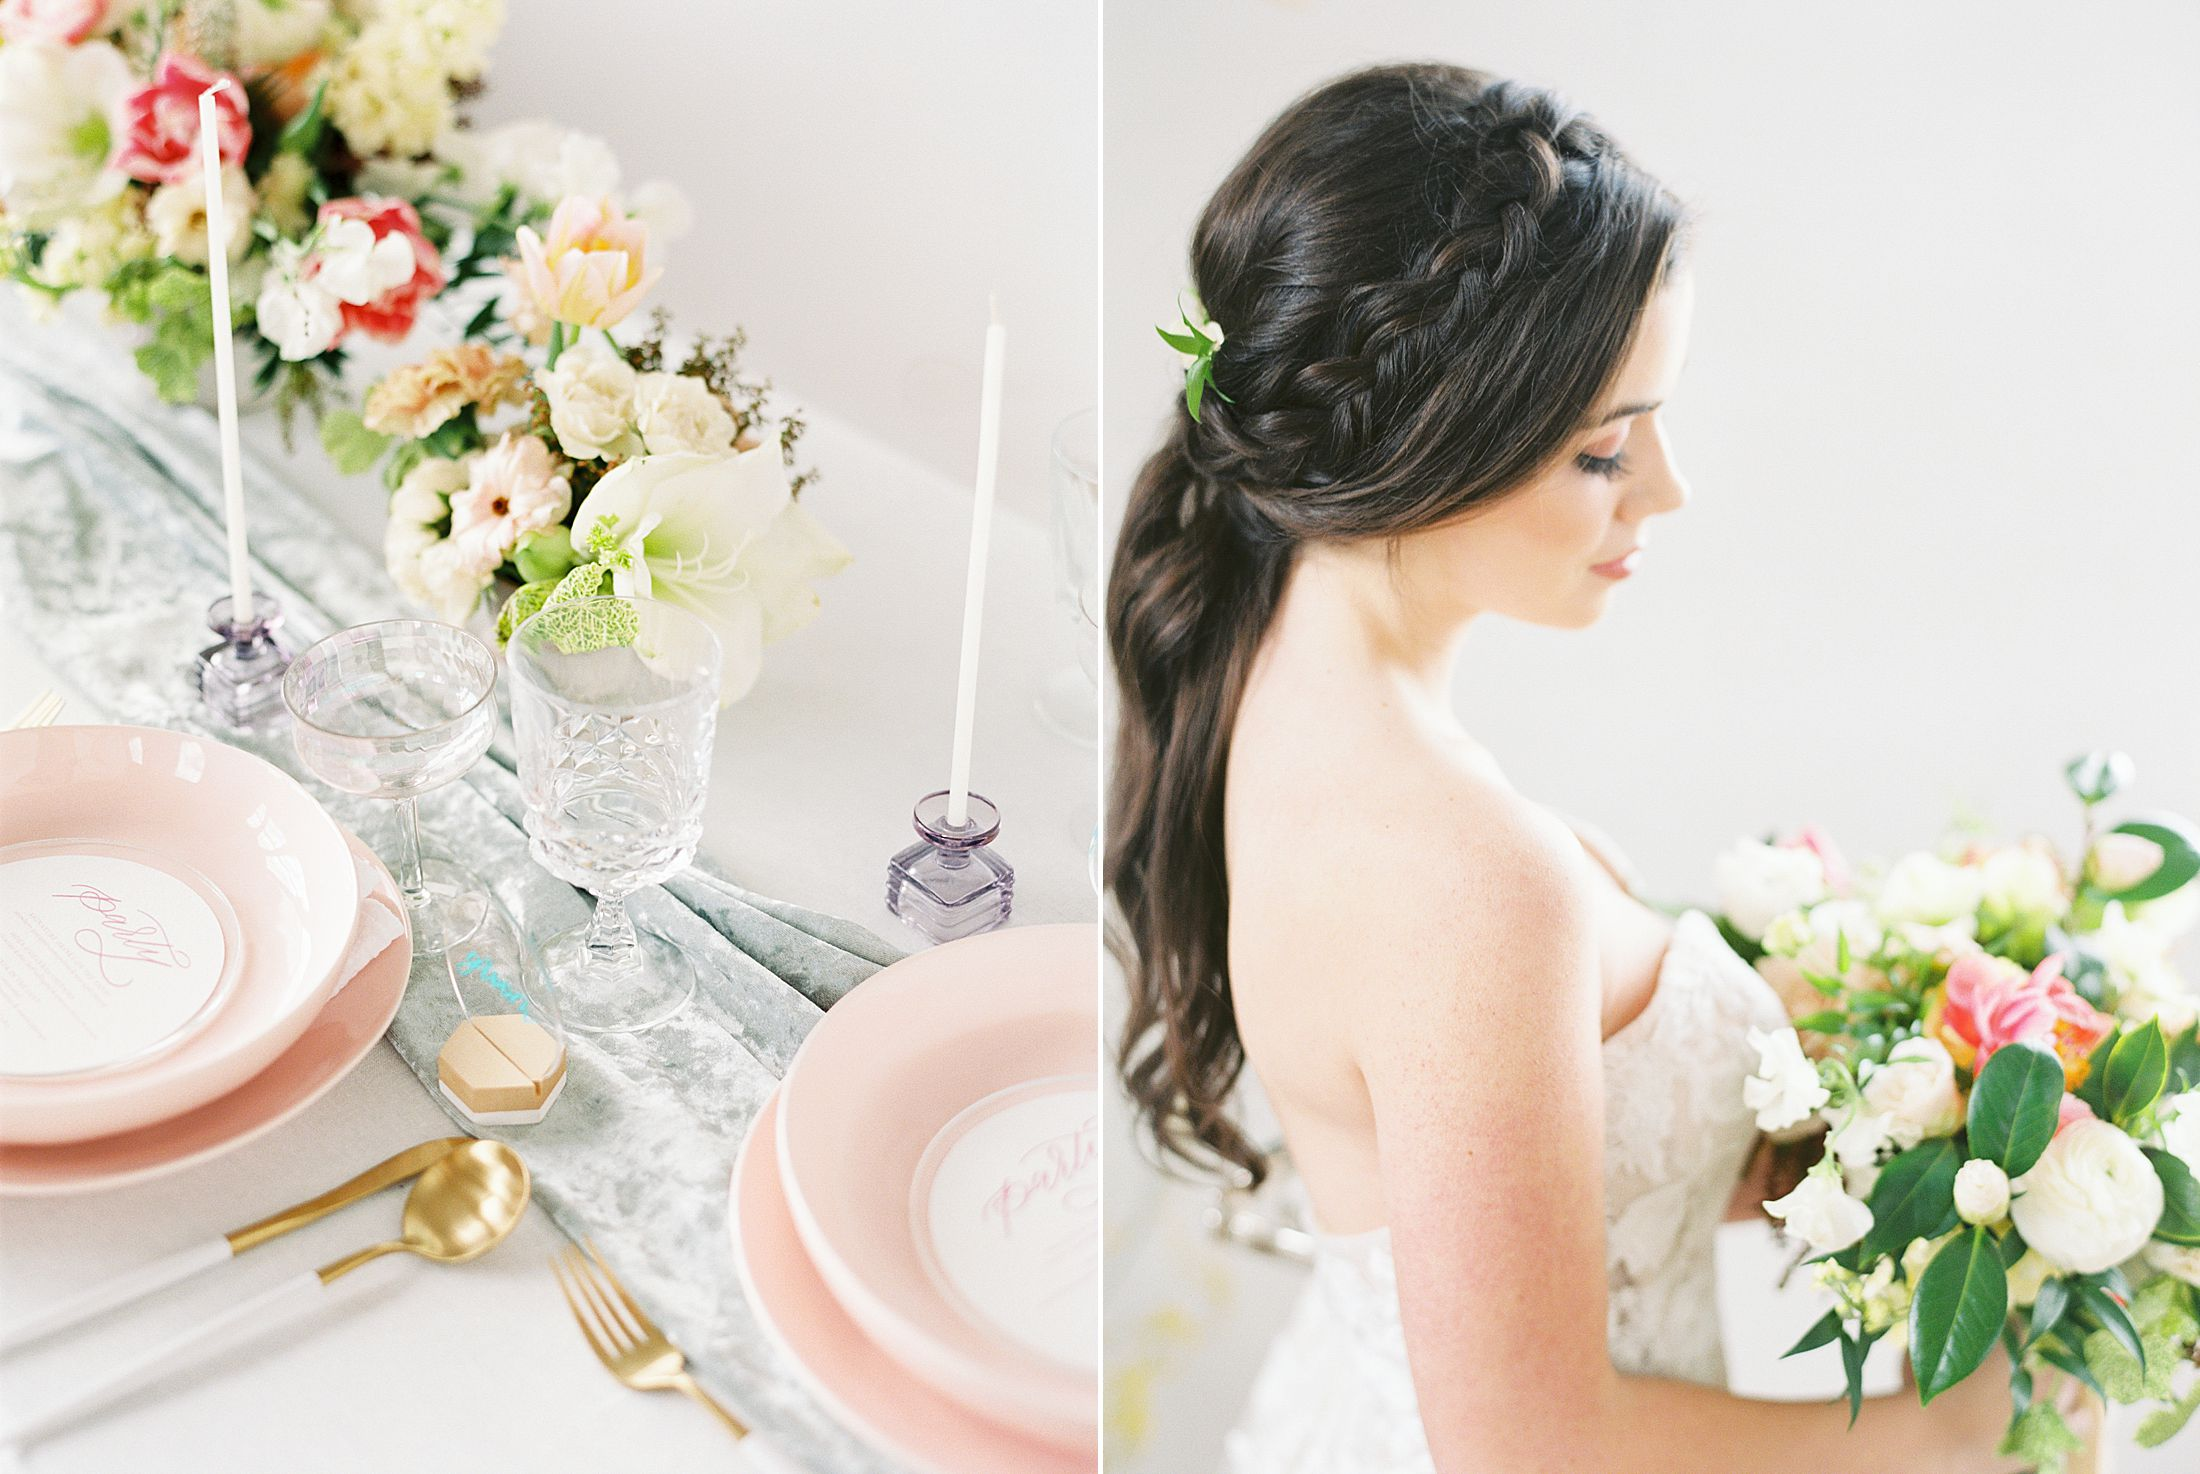 Bay Area Spring Wedding Inspiration - Ashley Baumgartner - Inspired By This - Party Crush Studio and Lens of Lenox Videography - Bay Area Wedding Photography_0071.jpg